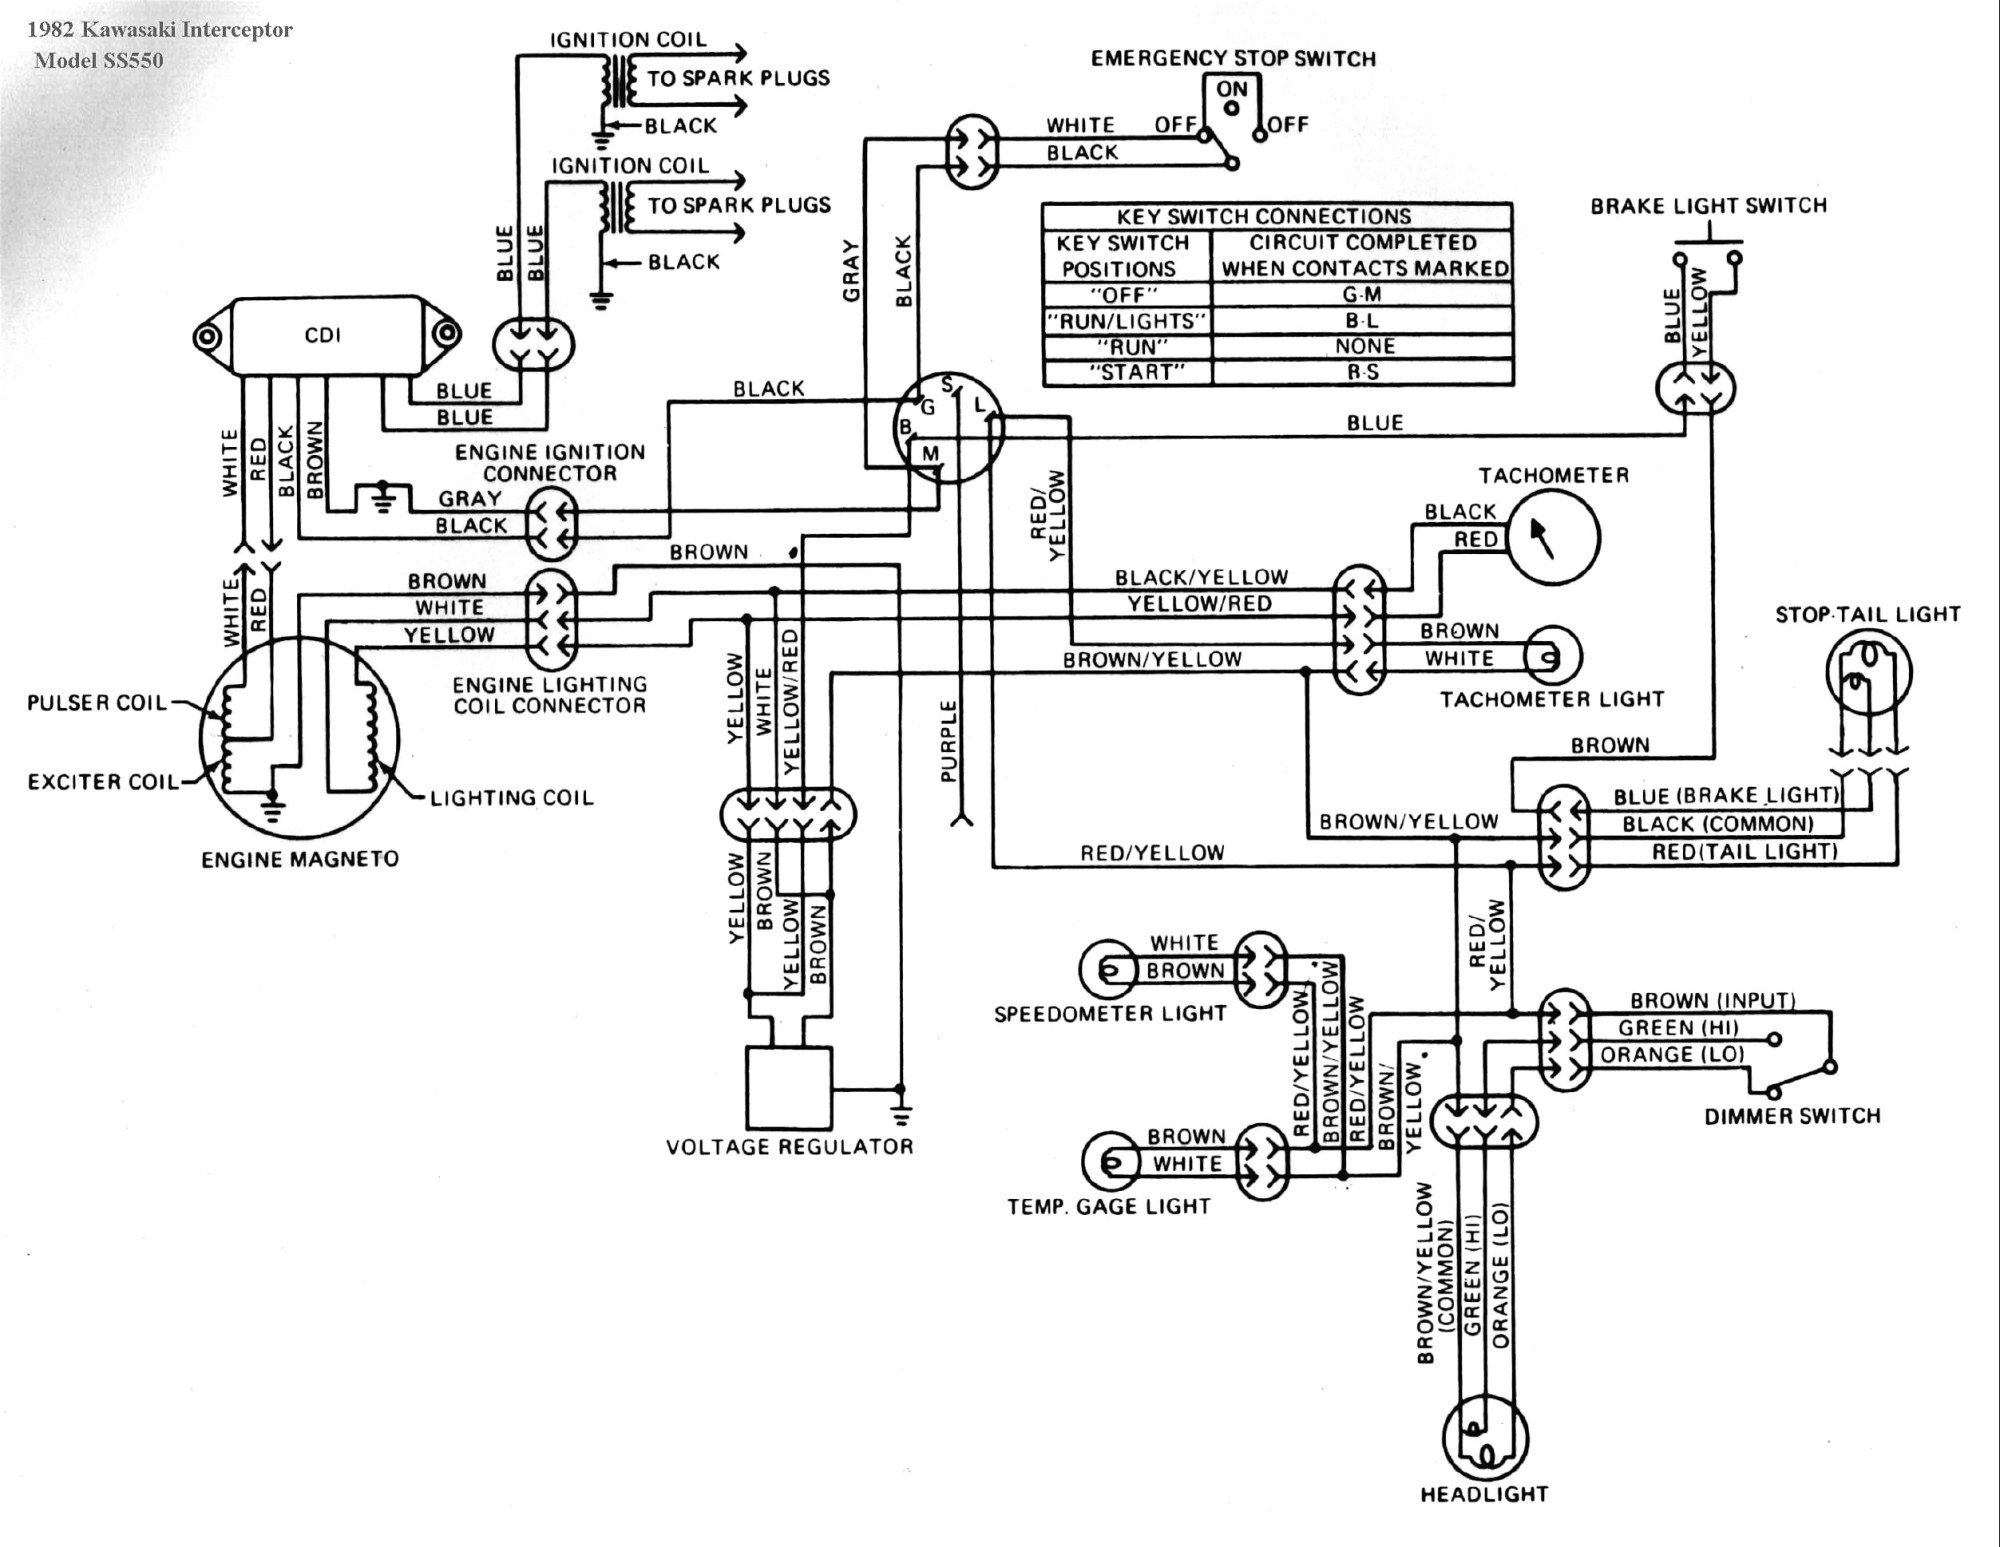 hight resolution of jet ski wiring diagram wiring diagram mega jet ski wiring diagram wiring diagram centre kawasaki 750